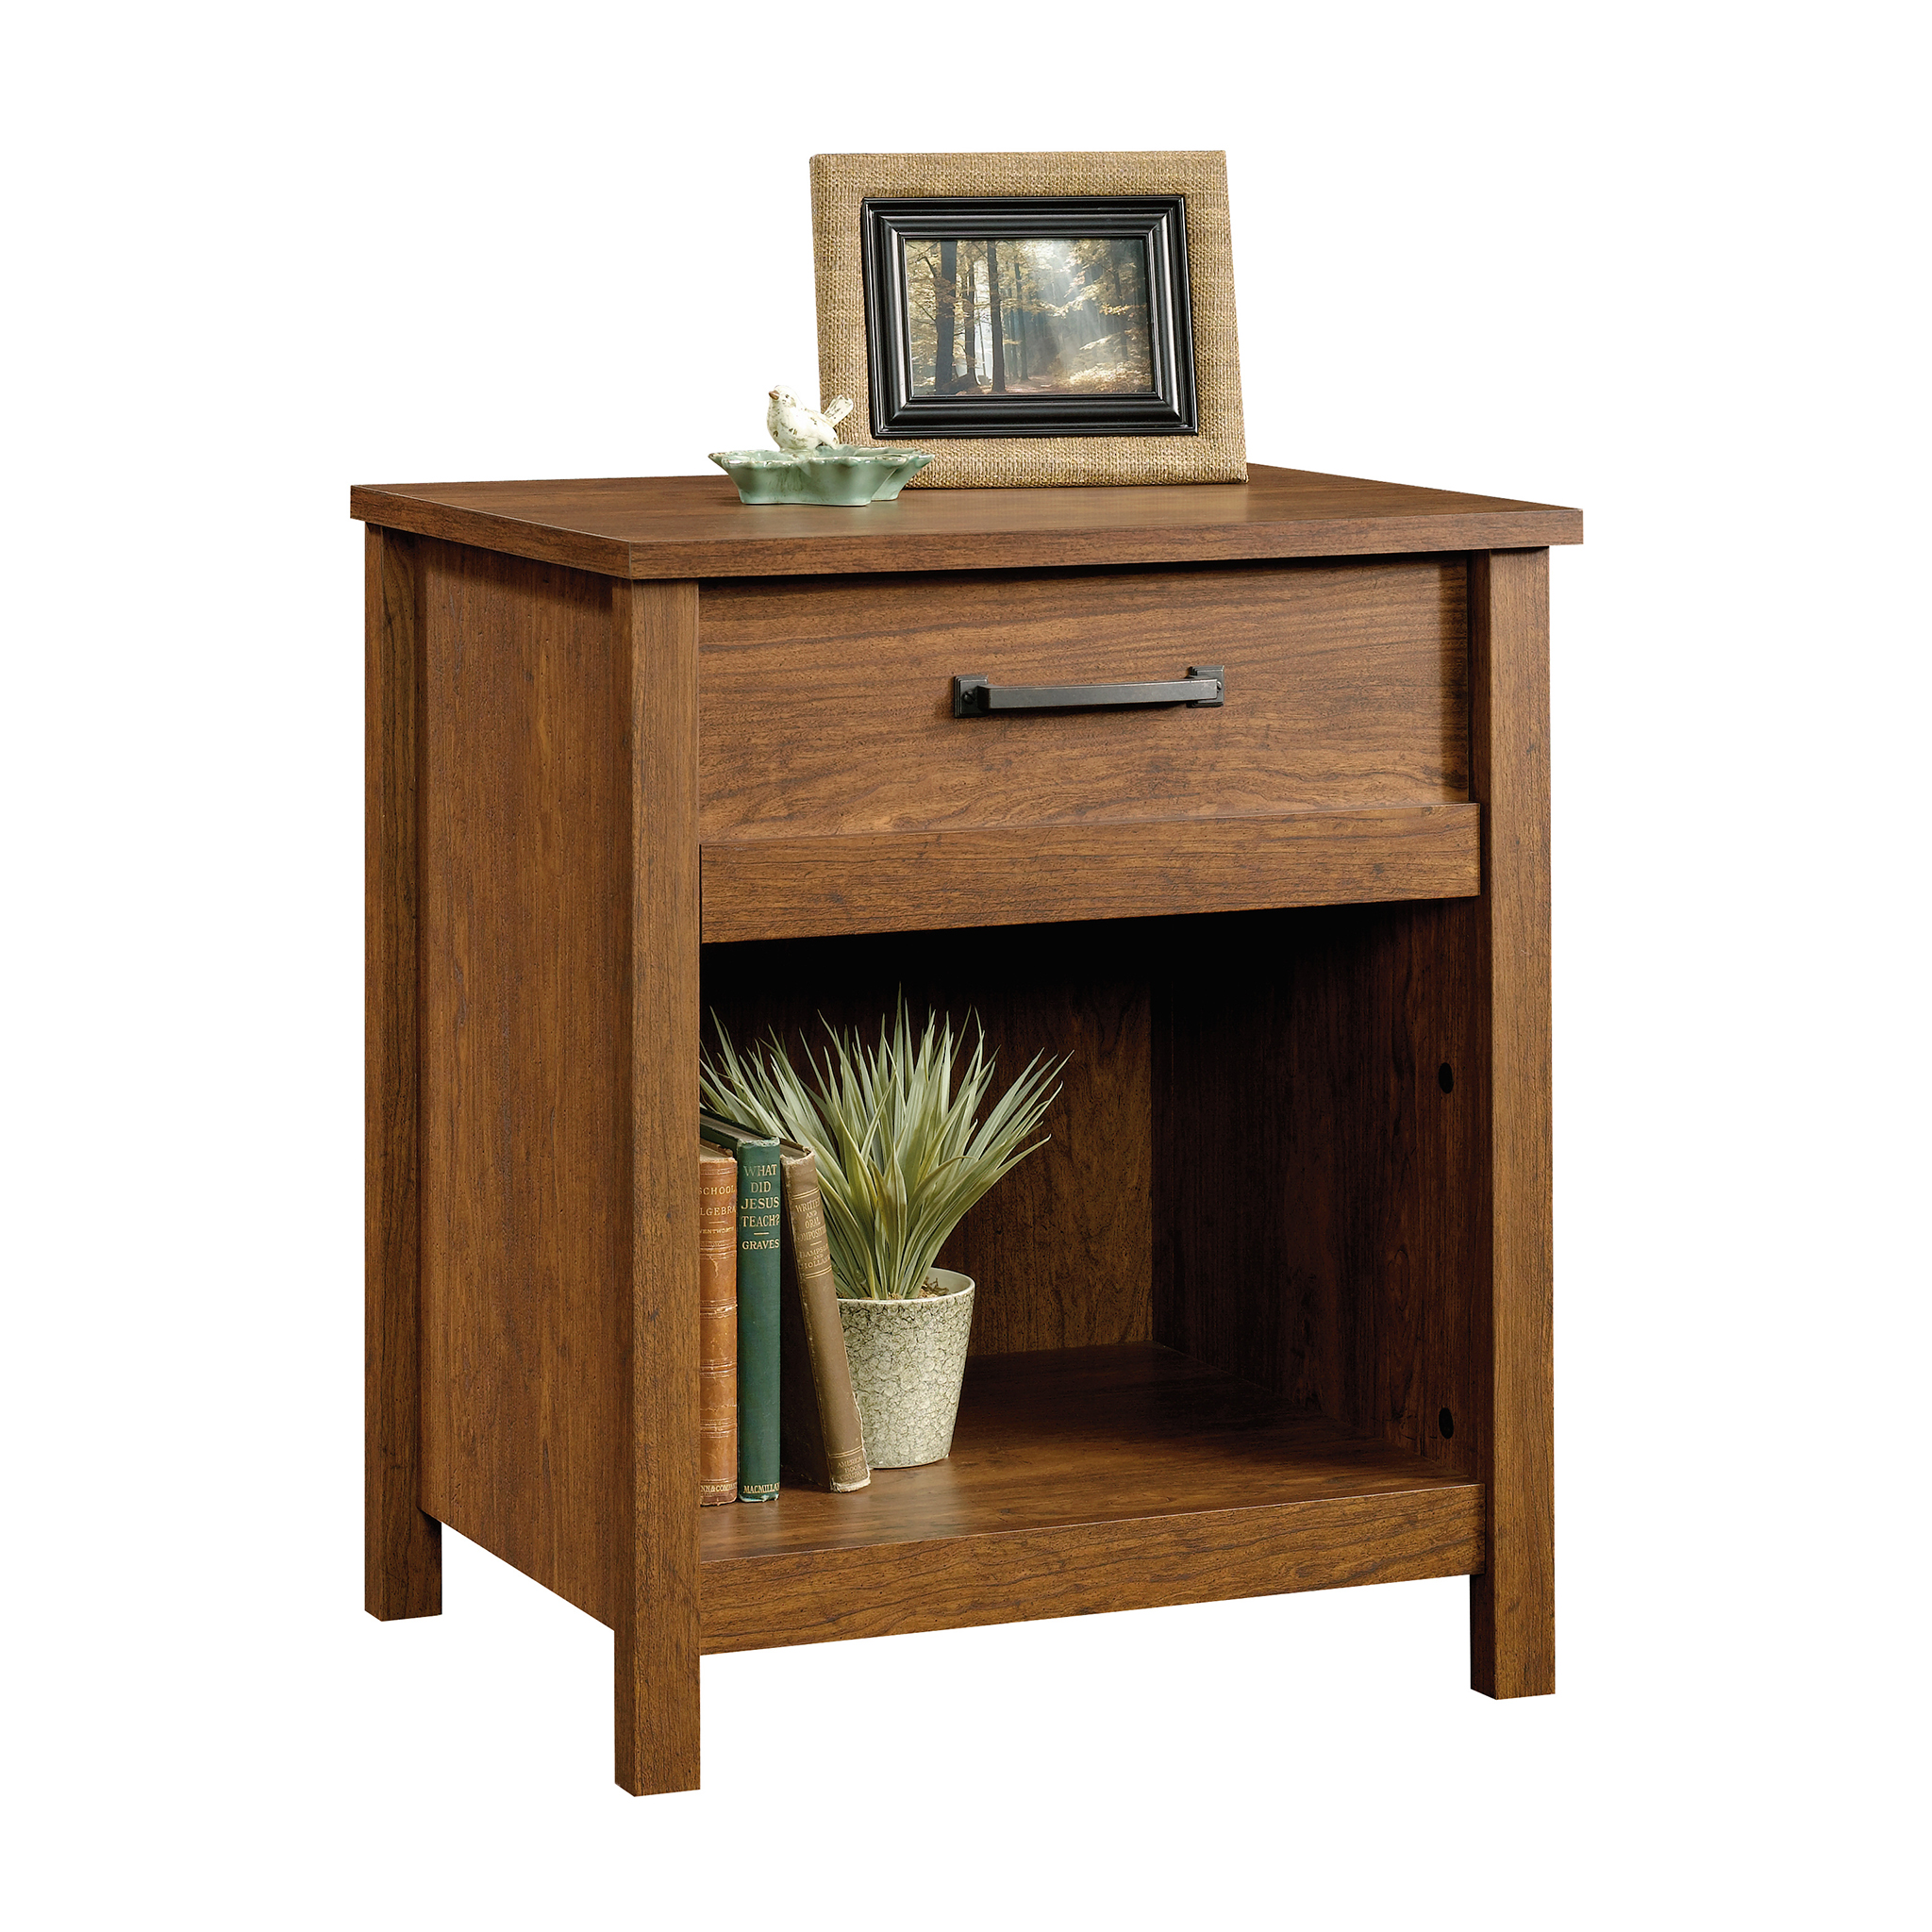 sauder cannery bridge night stand milled cherry finish end table long console with shelves rustic bedding oak coffee tables storage space magnolia range cookers piece marble set